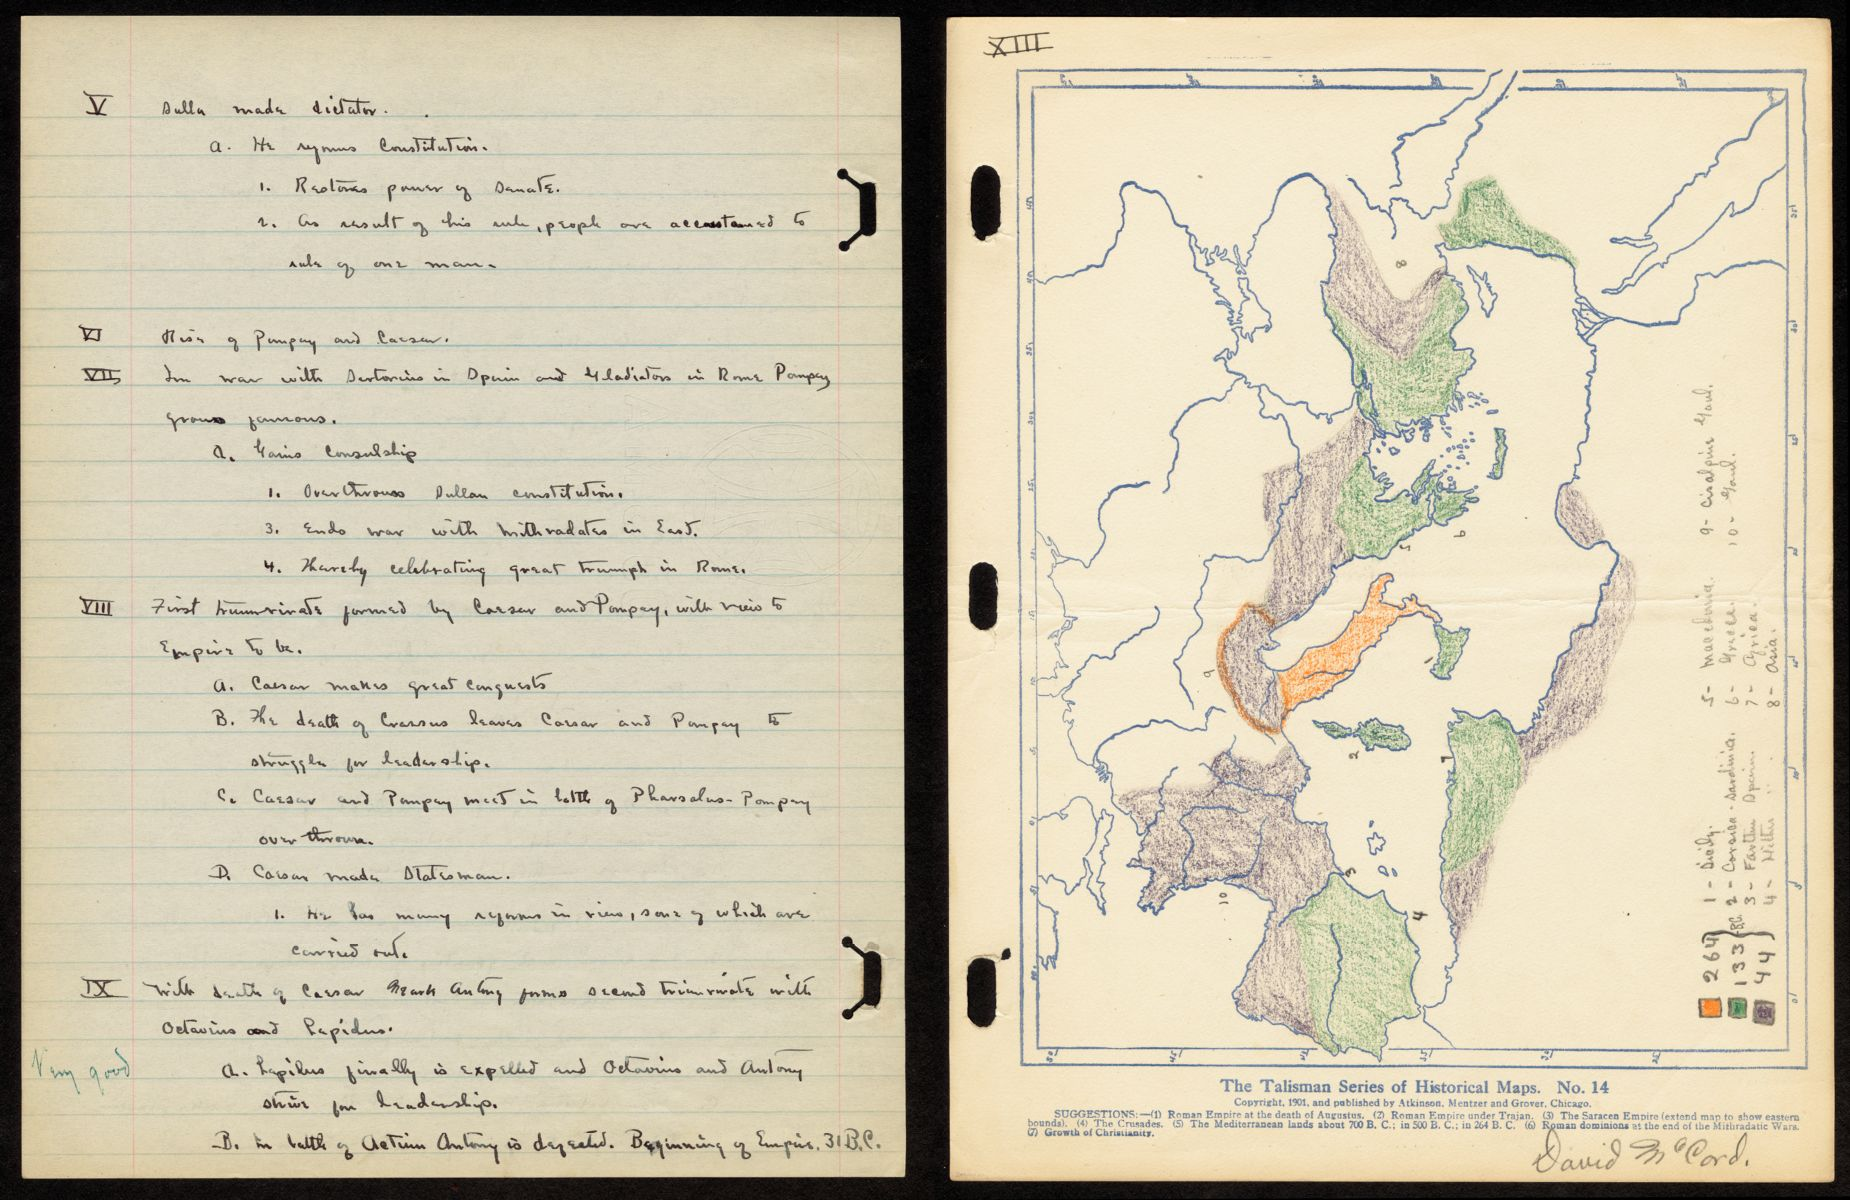 Teaching with Maps in the Past